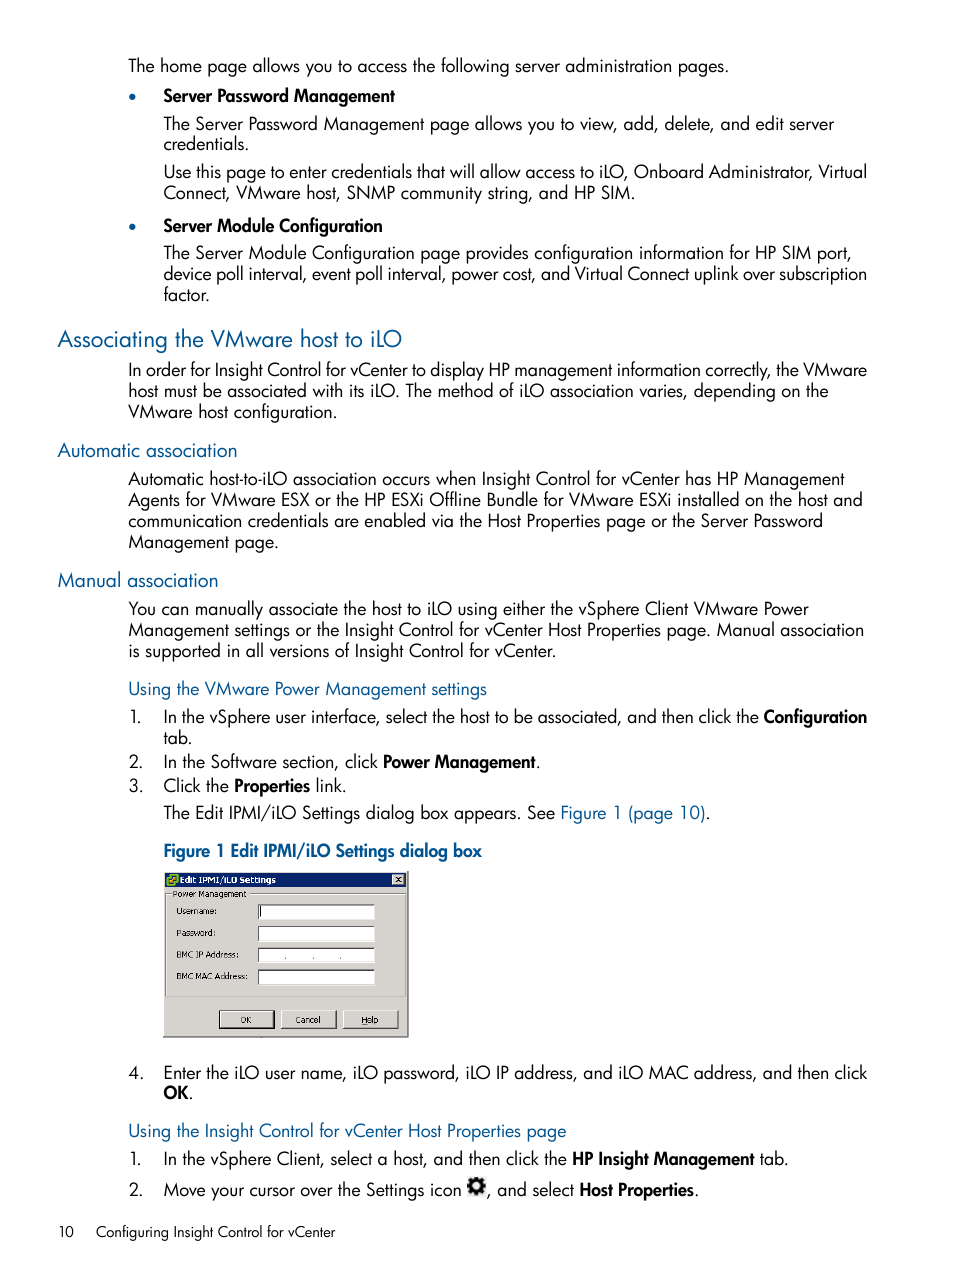 Associating the vmware host to ilo, Automatic association, Manual